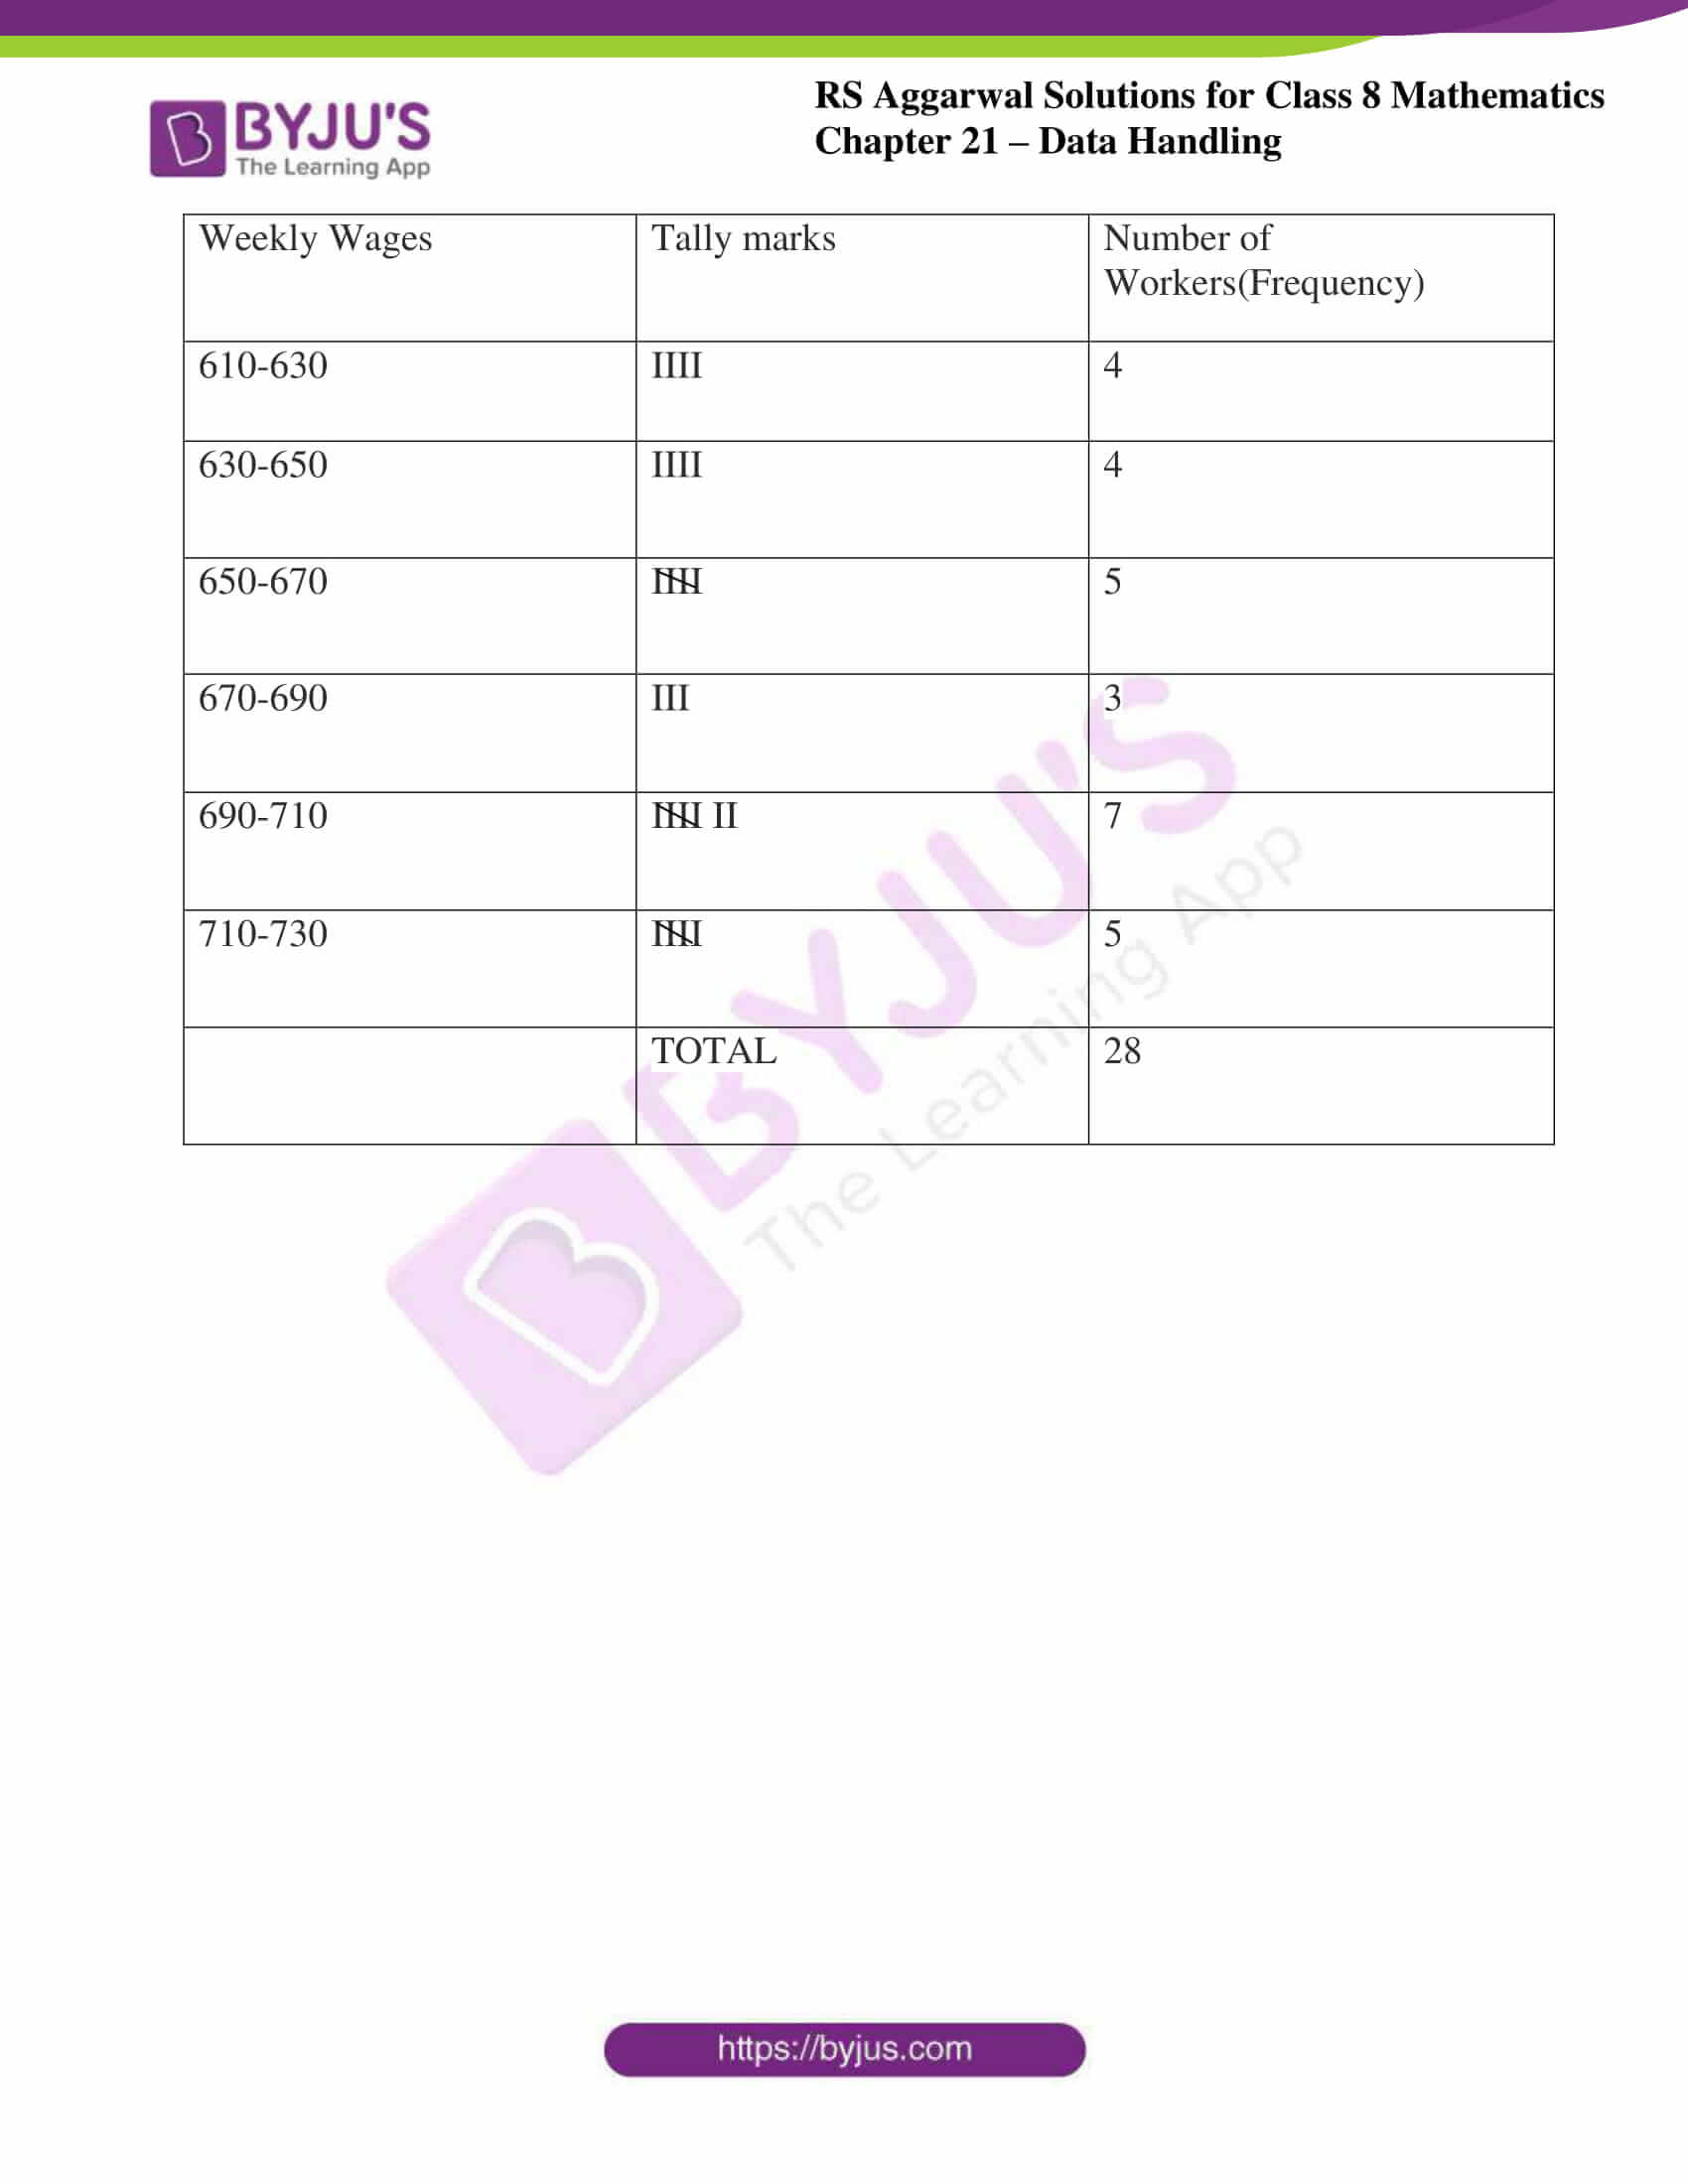 rs aggarwal solution for class 8 maths chapter 21 ex b 3